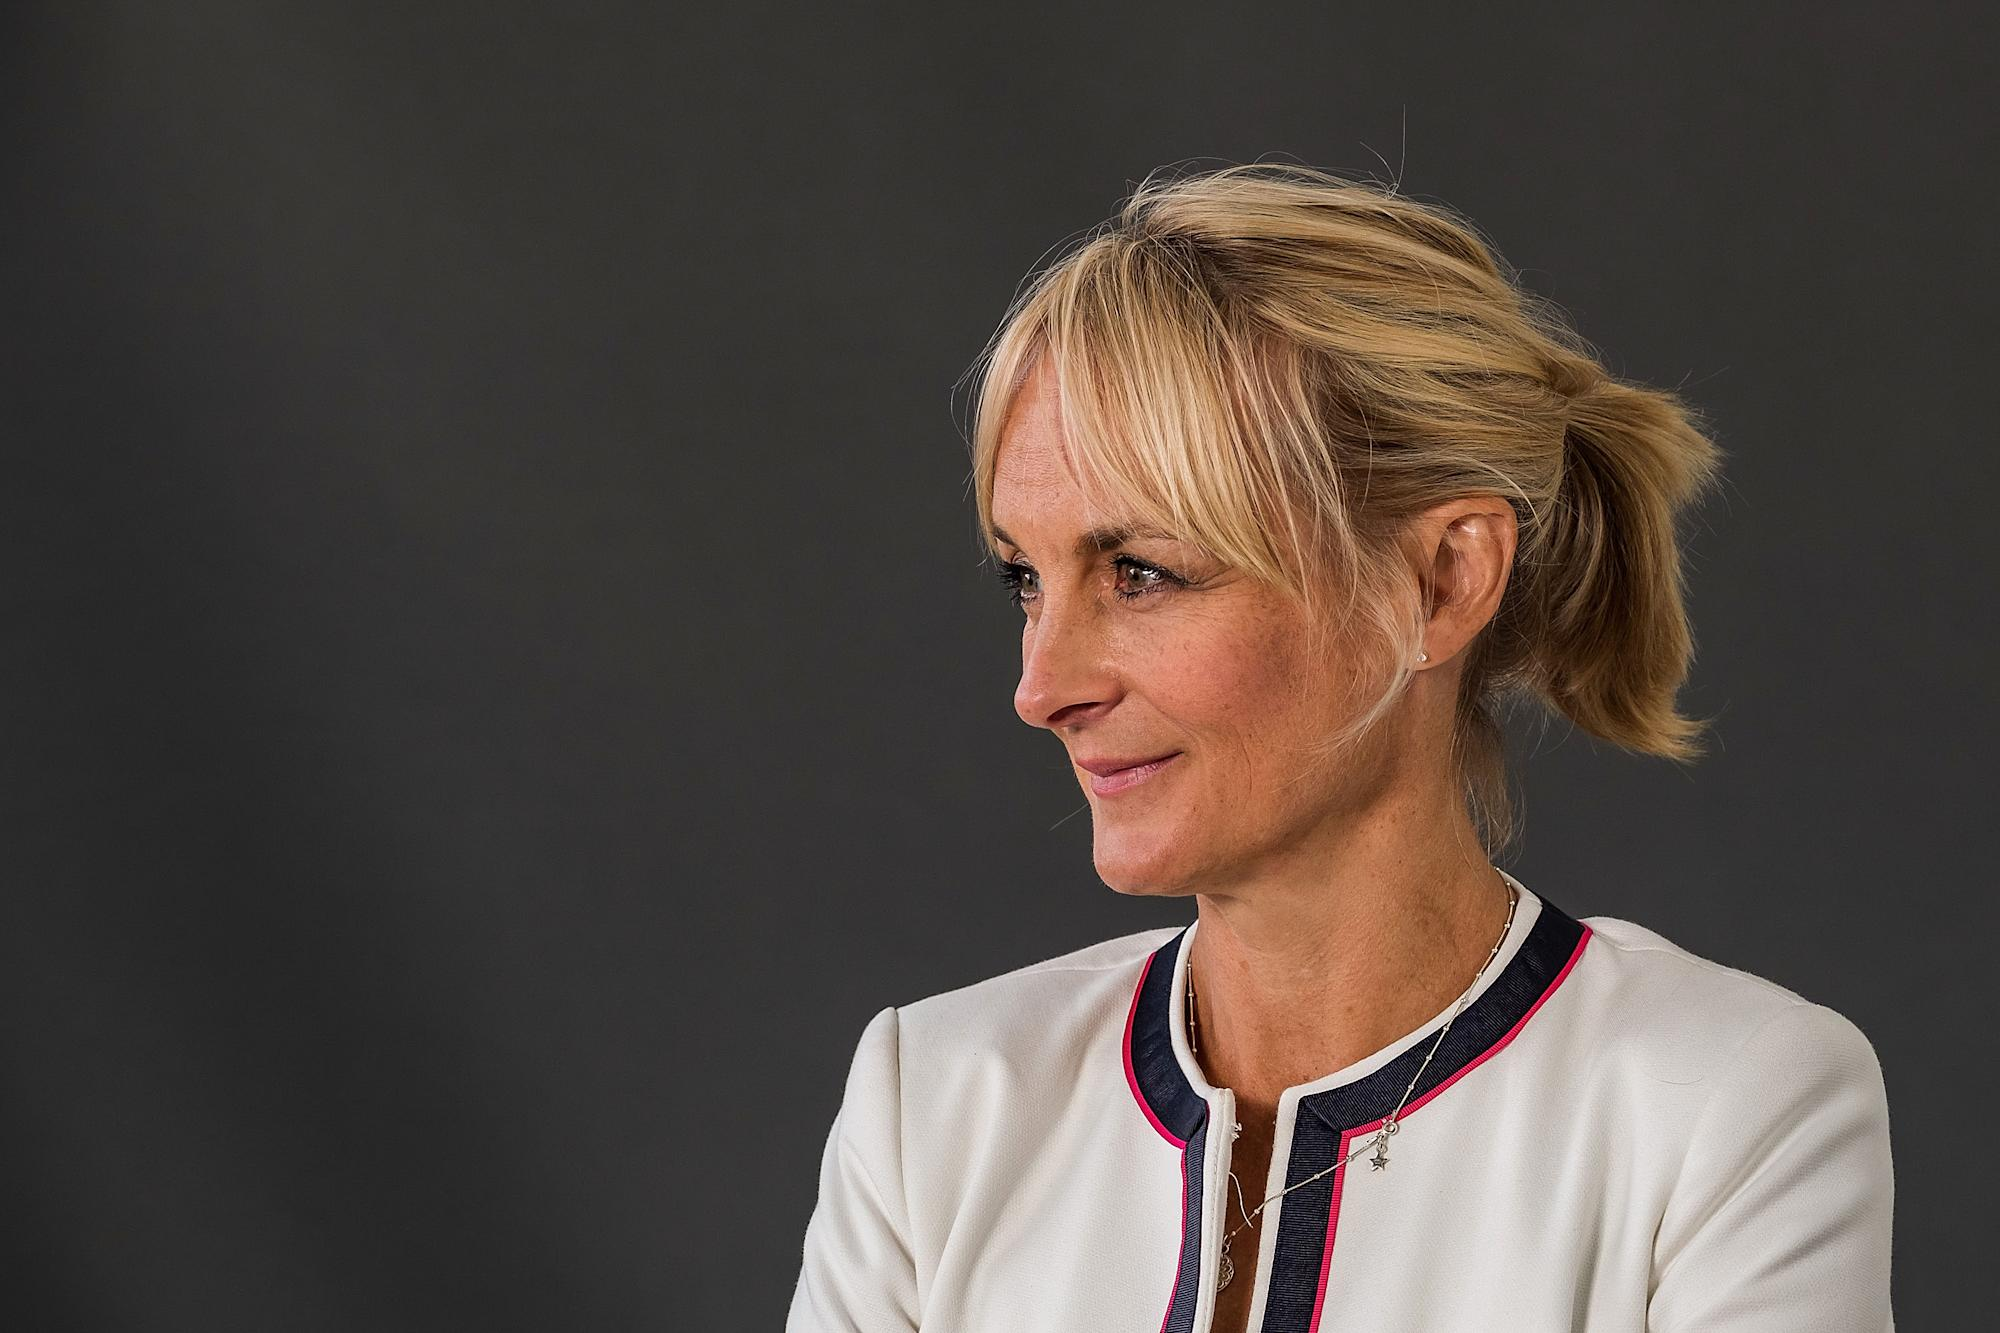 Louise Minchin deletes social media apps over online hate messages